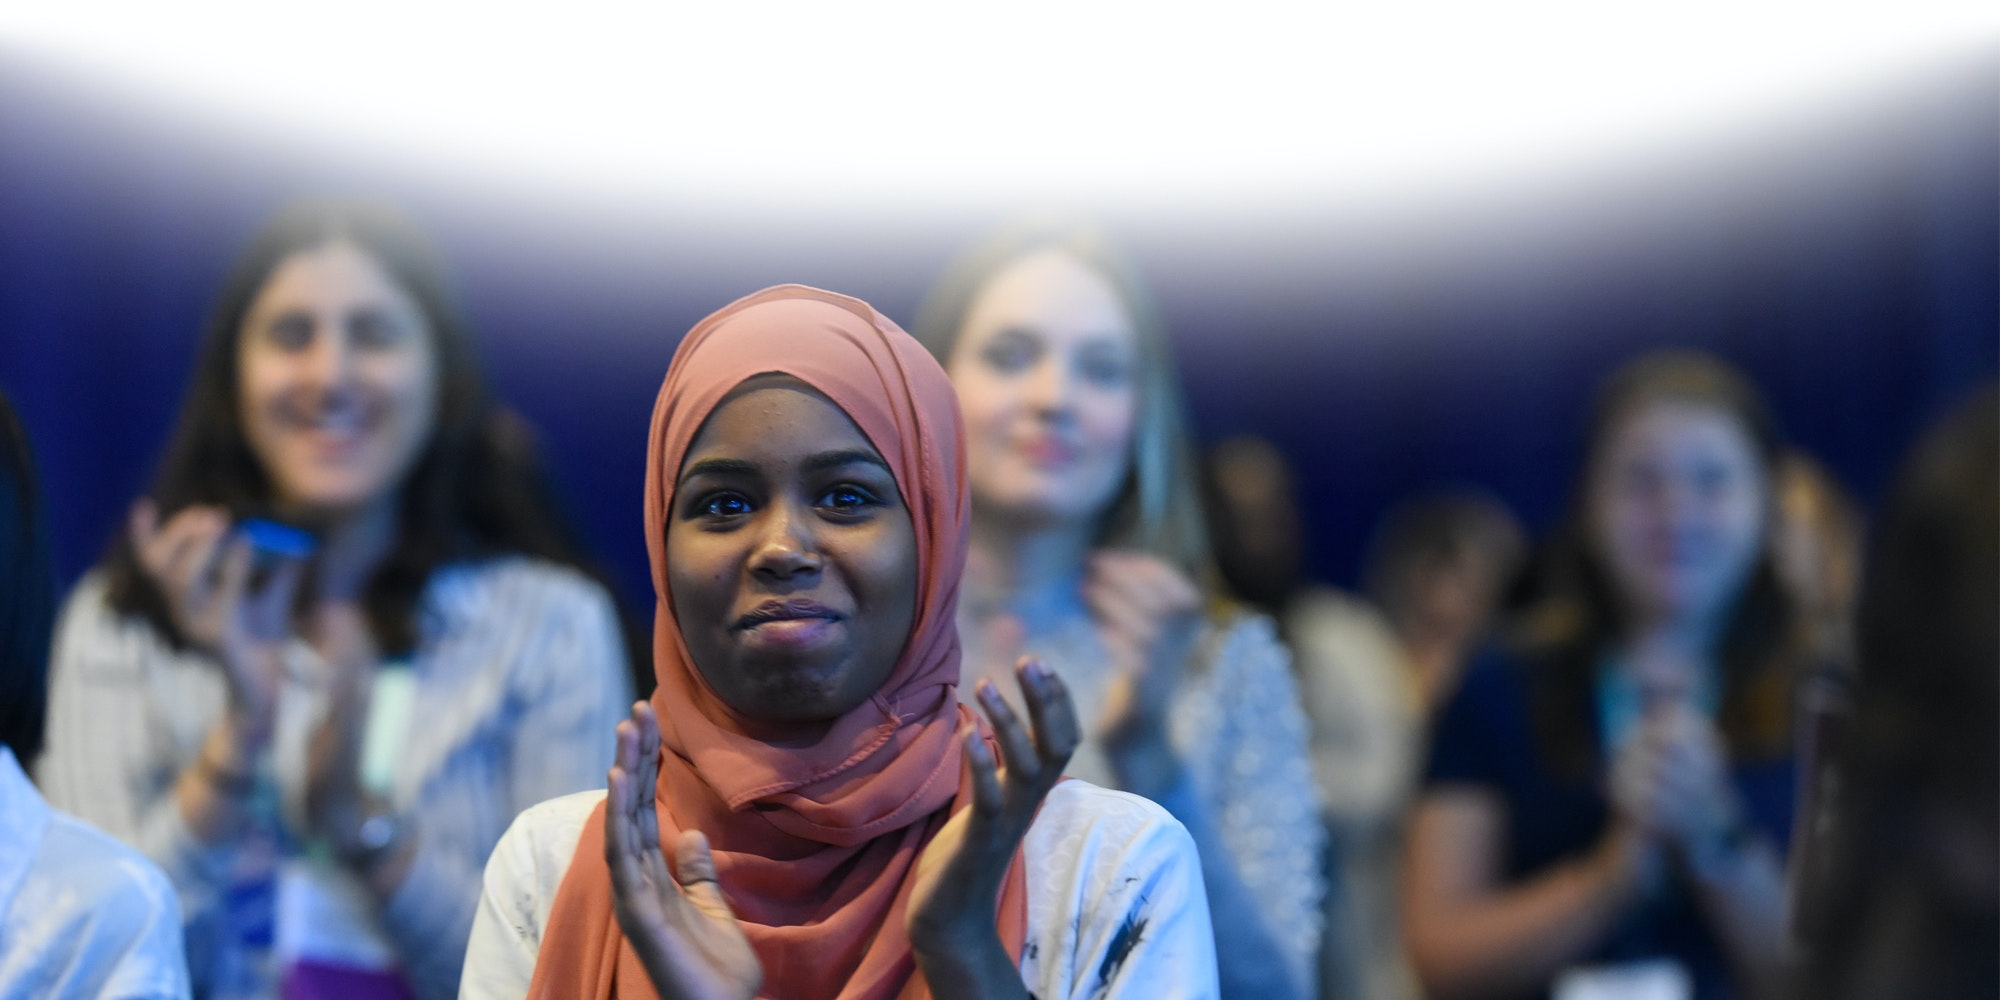 a girl is smiling and have her pink Hijab on and clapping